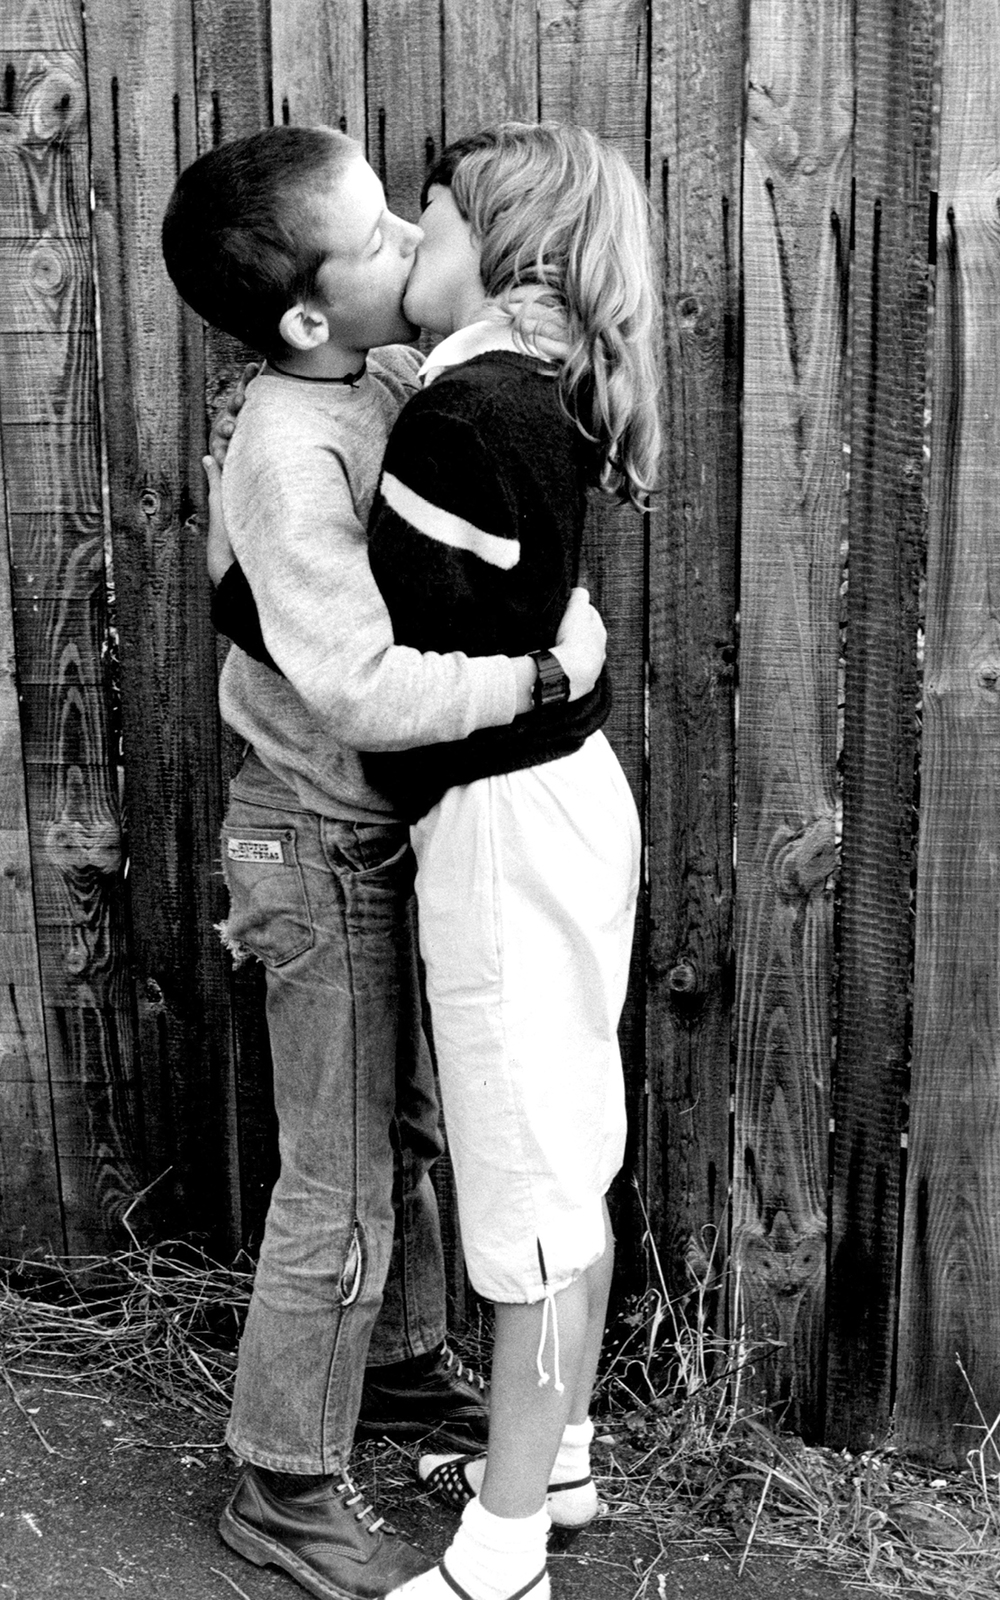 Two kids kissing by wooden fence High Wycombe, UK, 1980's. © Gavin Watson / PYMCA